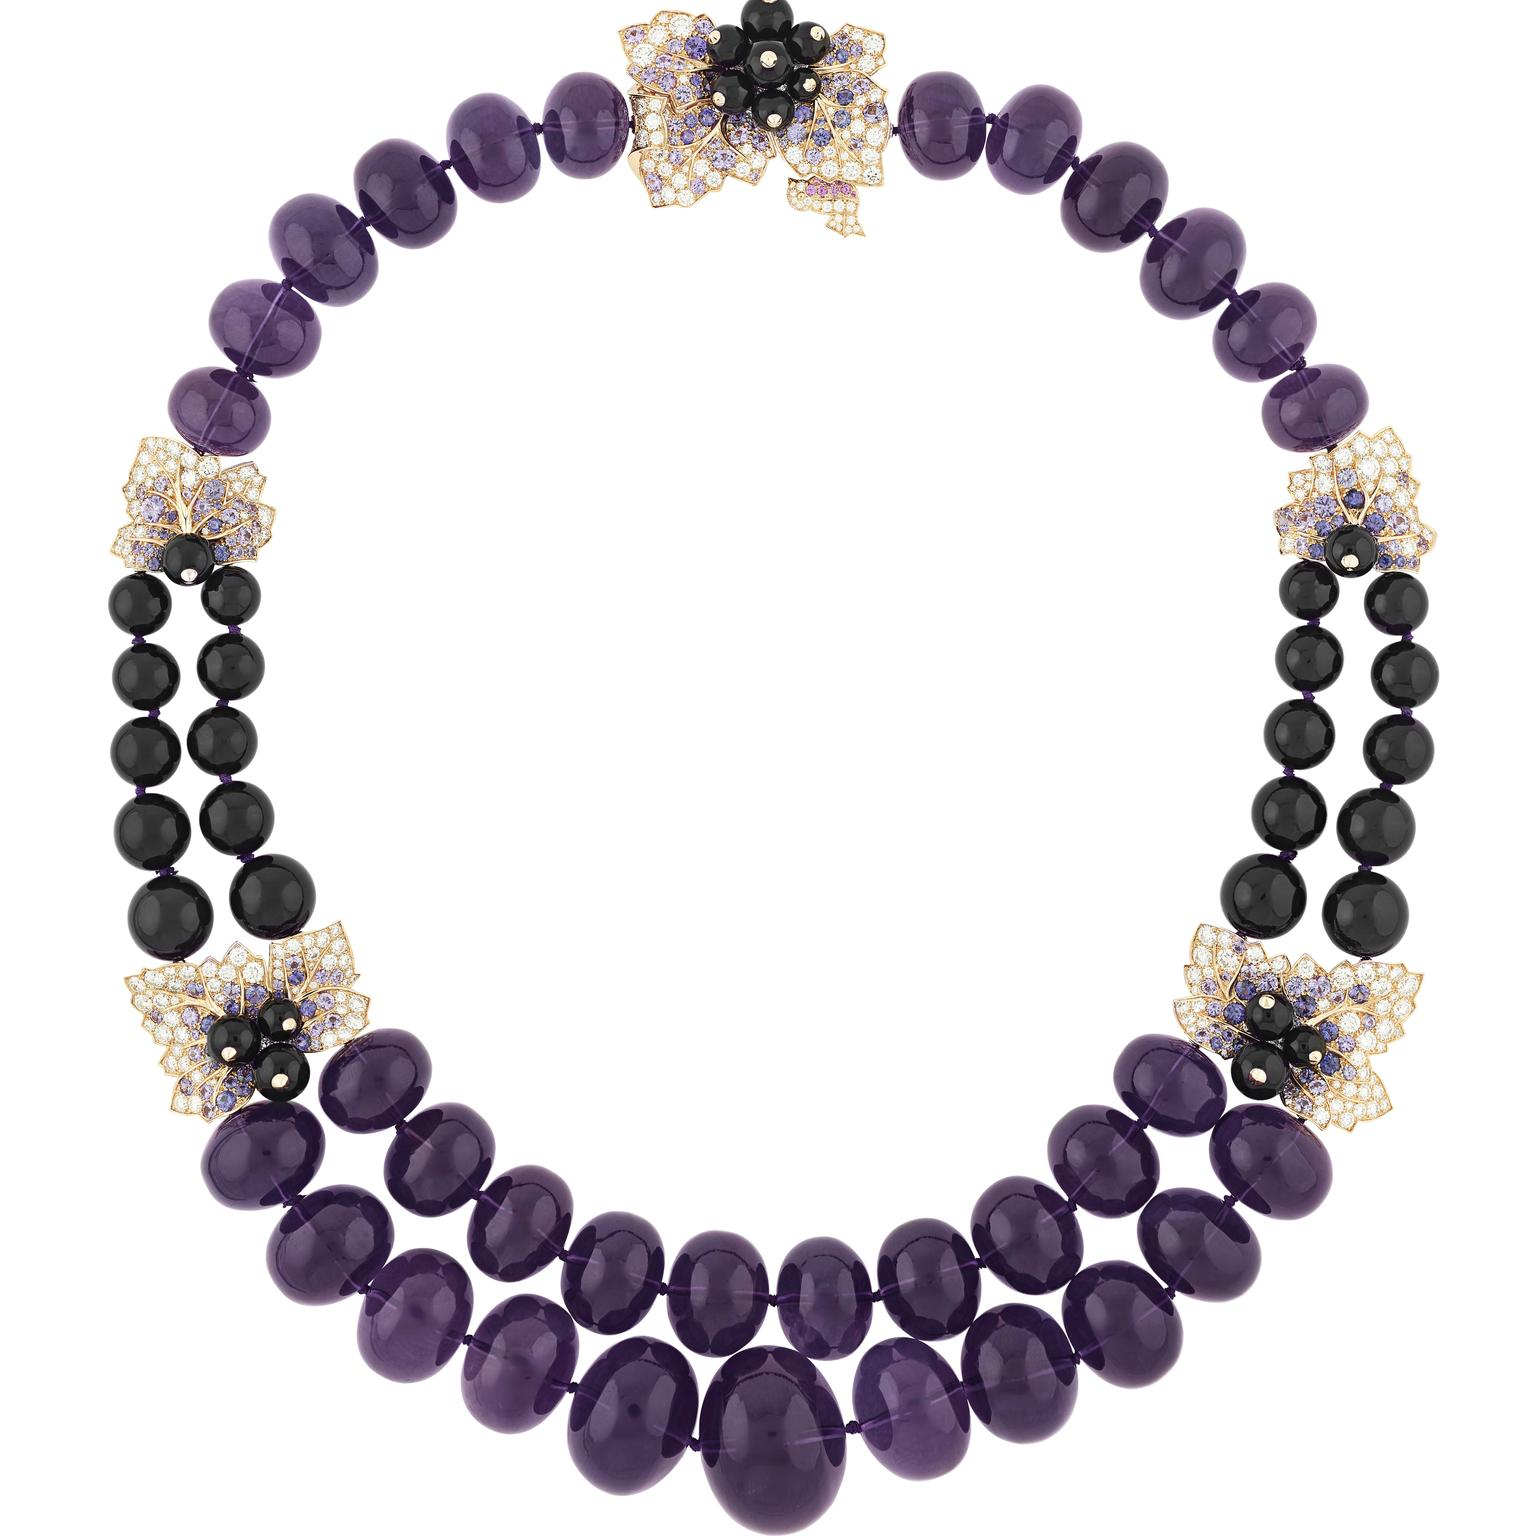 Van Cleef & Arpels Secret de Cassis amethyst necklace